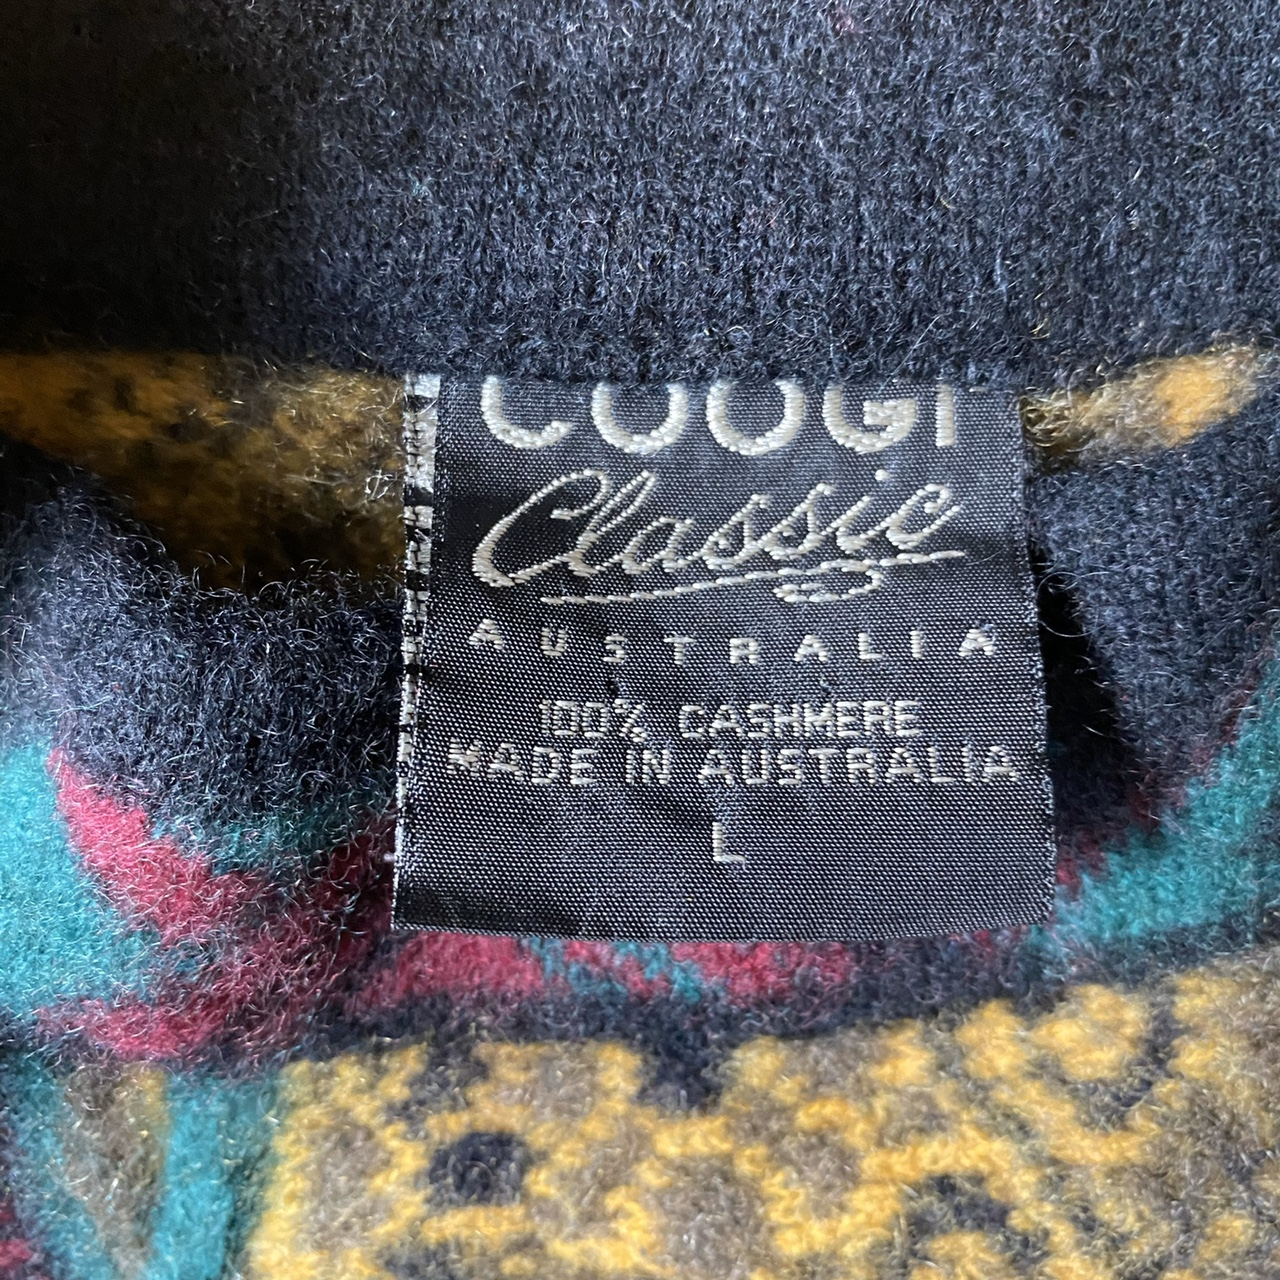 Product Image 3 - Wow truly another amazing coogi